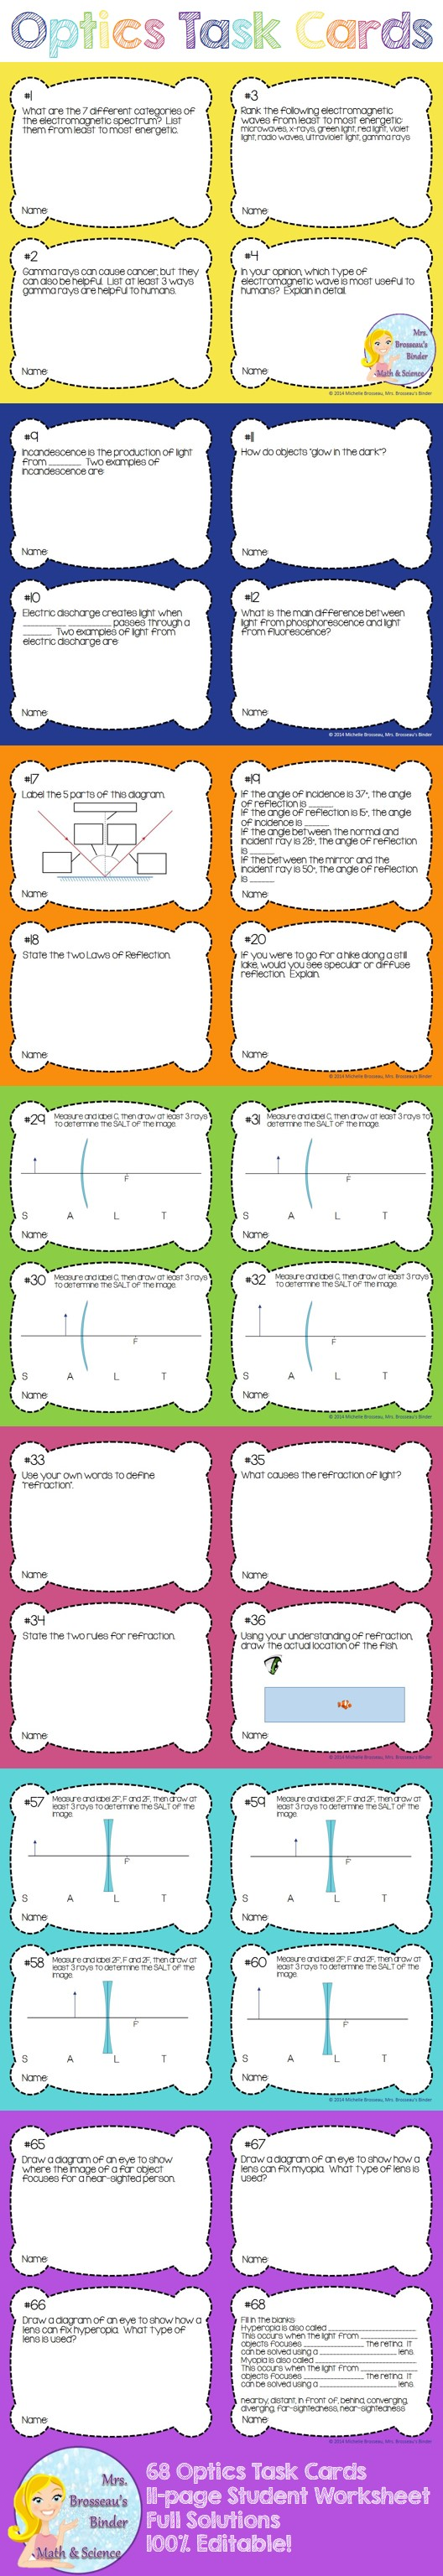 medium resolution of Optics Task Cards - 68 Cards with student worksheets and full solutions!  Topics: Electromagnetic Spectrum